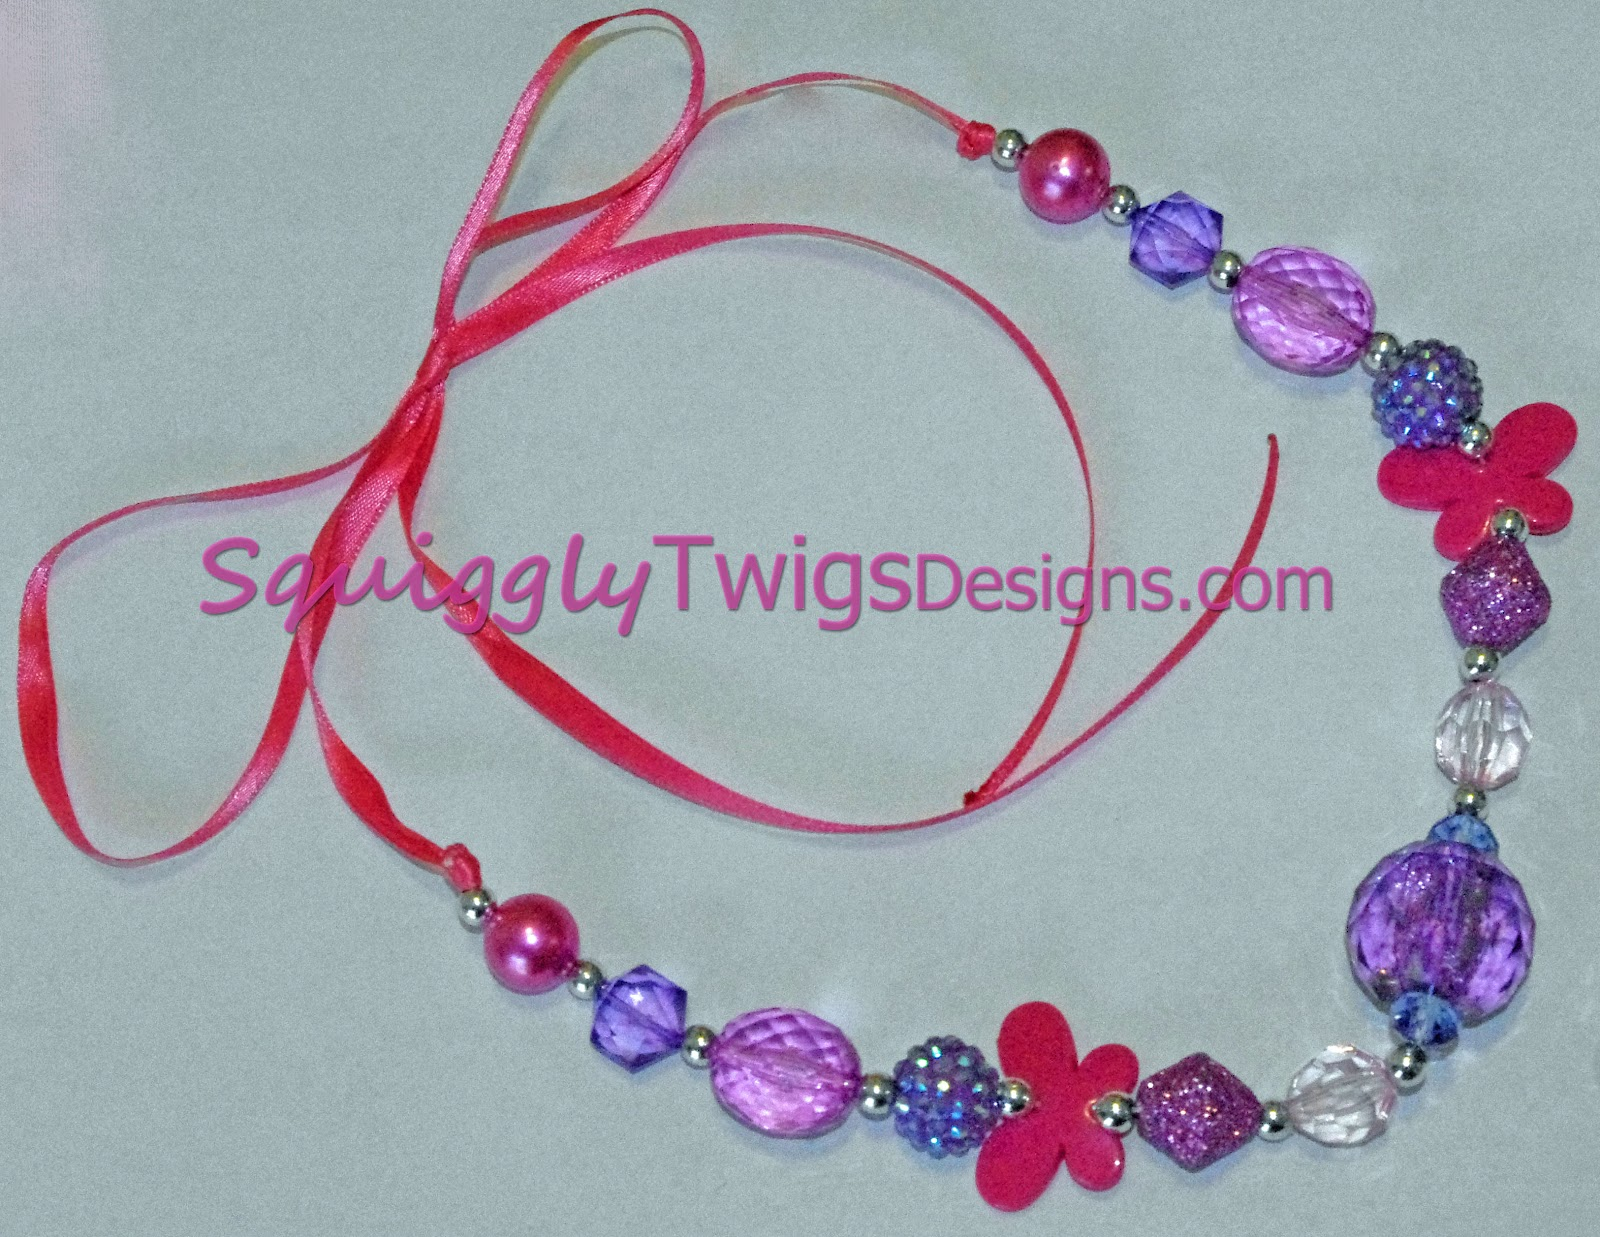 SquigglyTwigs Designs Tuesdays Tute A Chunky Necklace